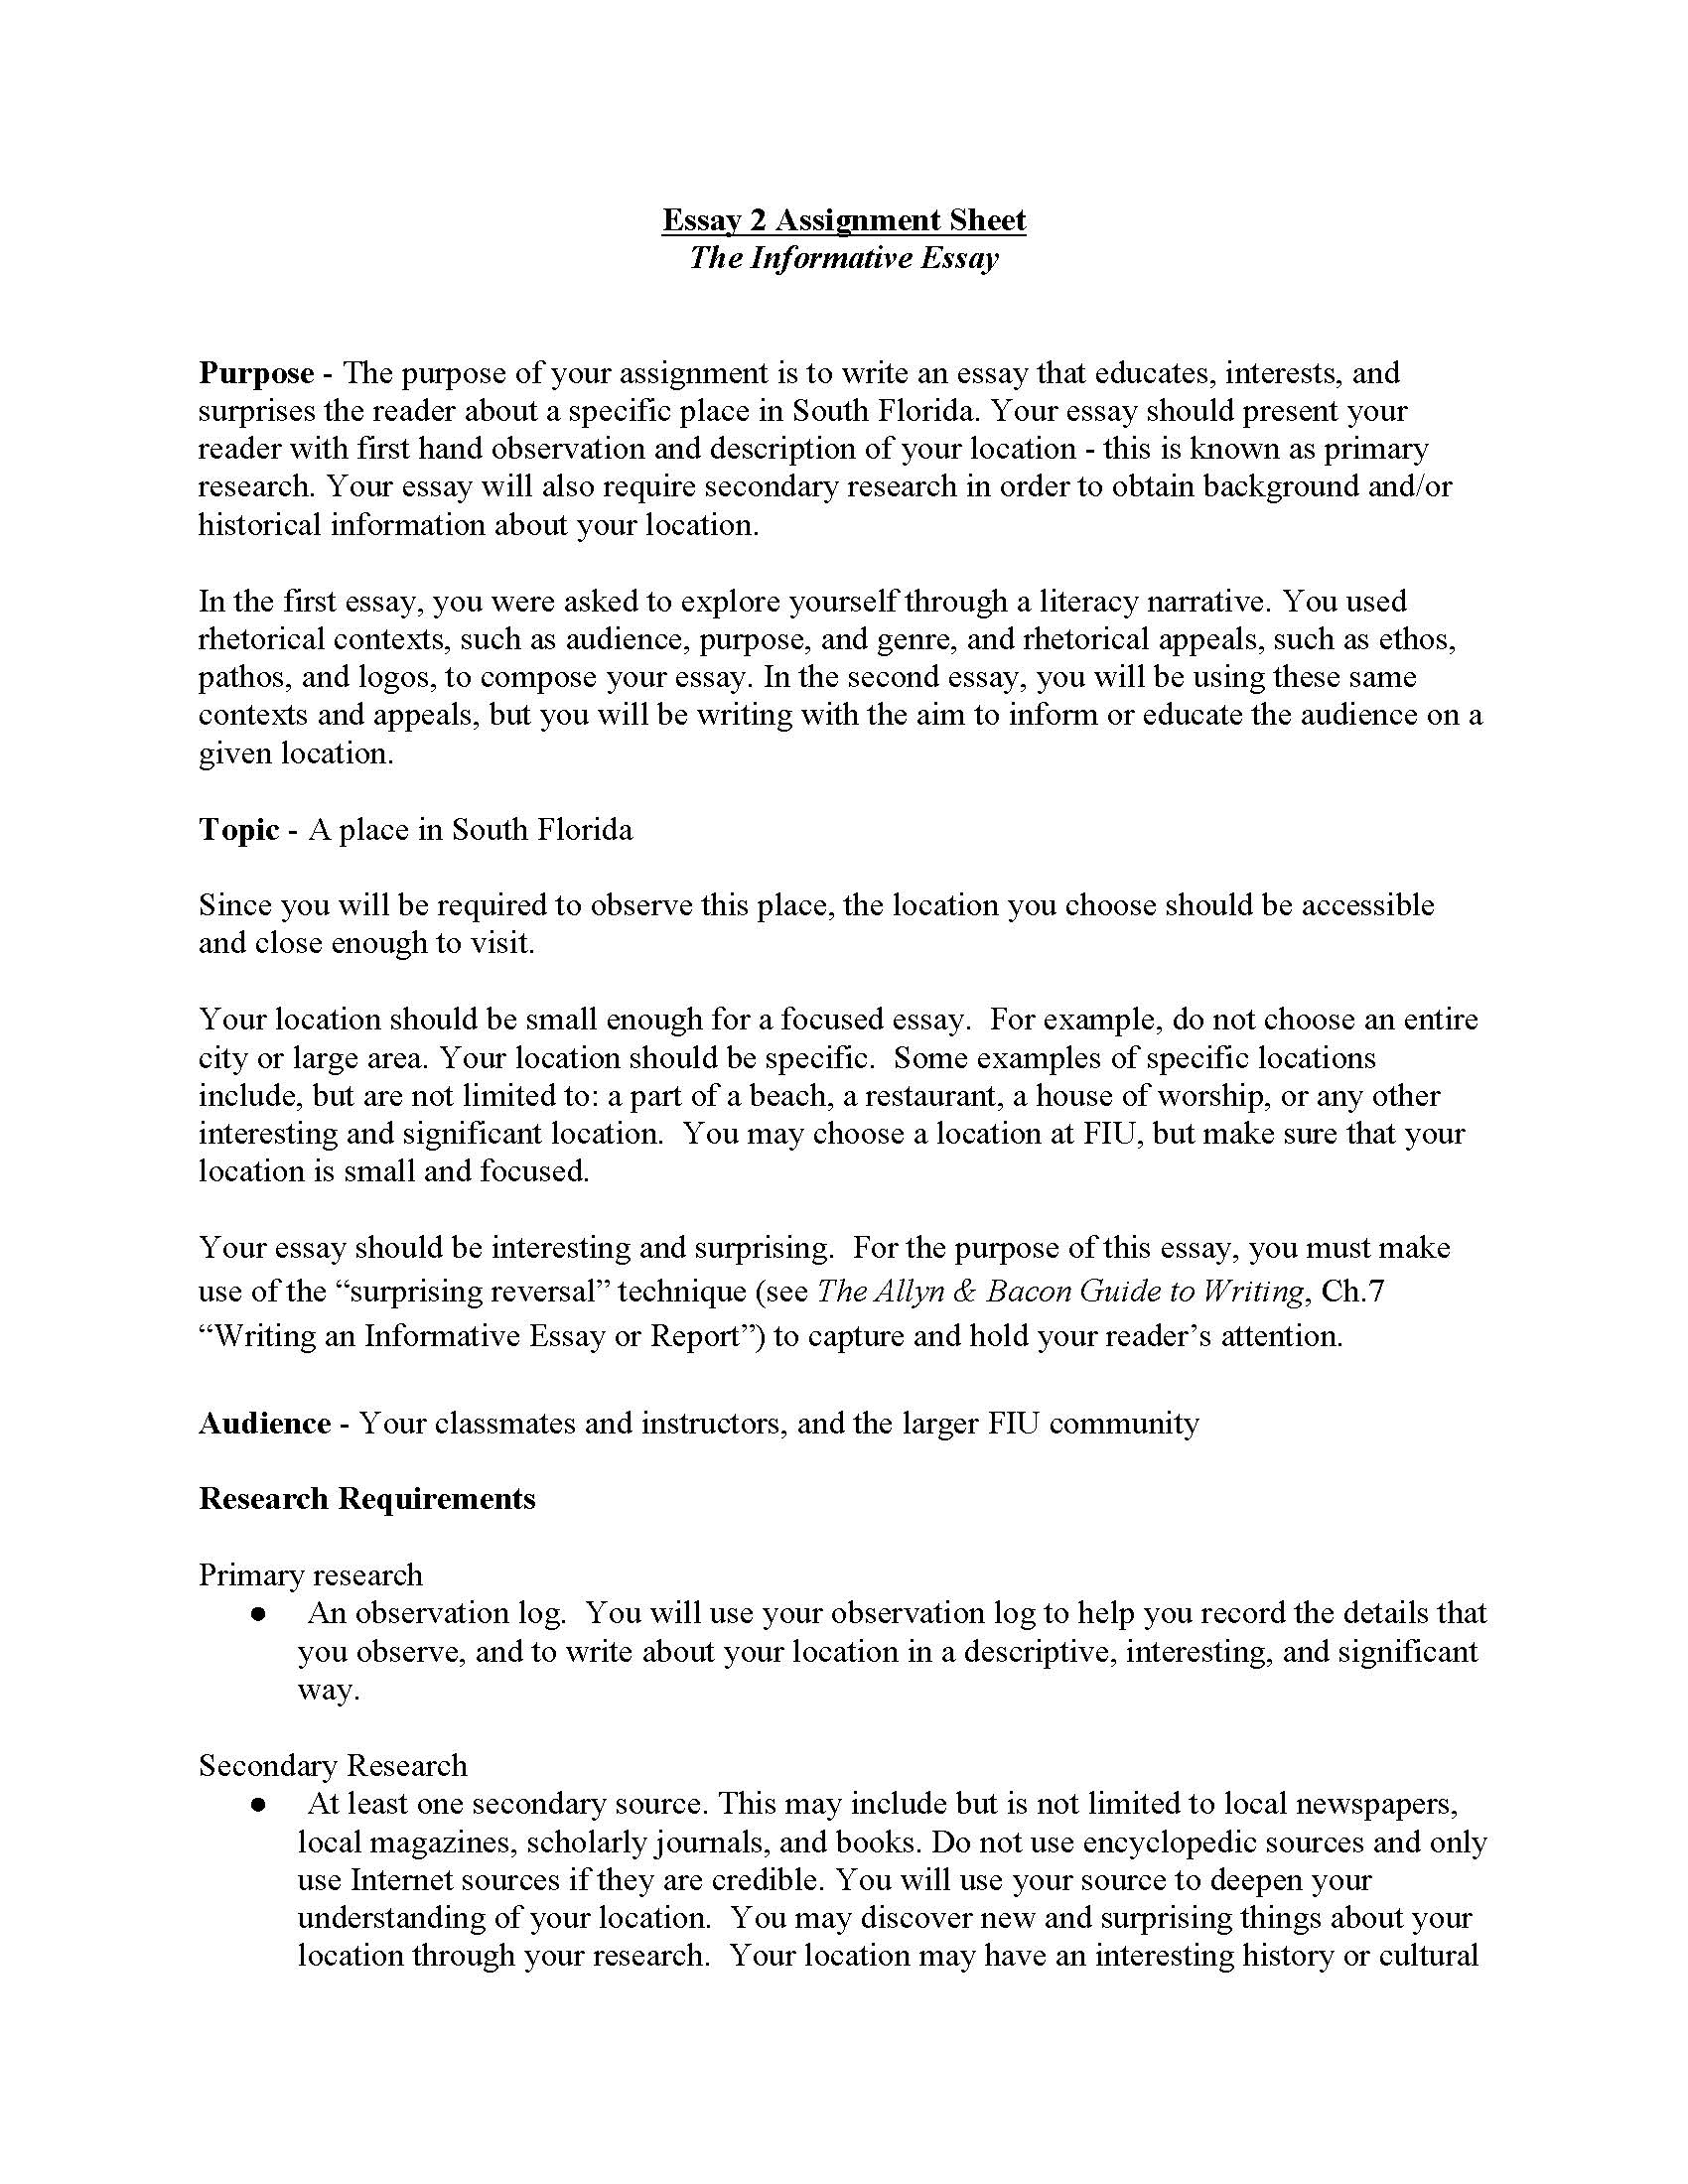 003 Informative Essay Unit Assignment Page 1 Example Unforgettable Informational Topics For Middle School Students Writing Prompts With Articles Examples Full